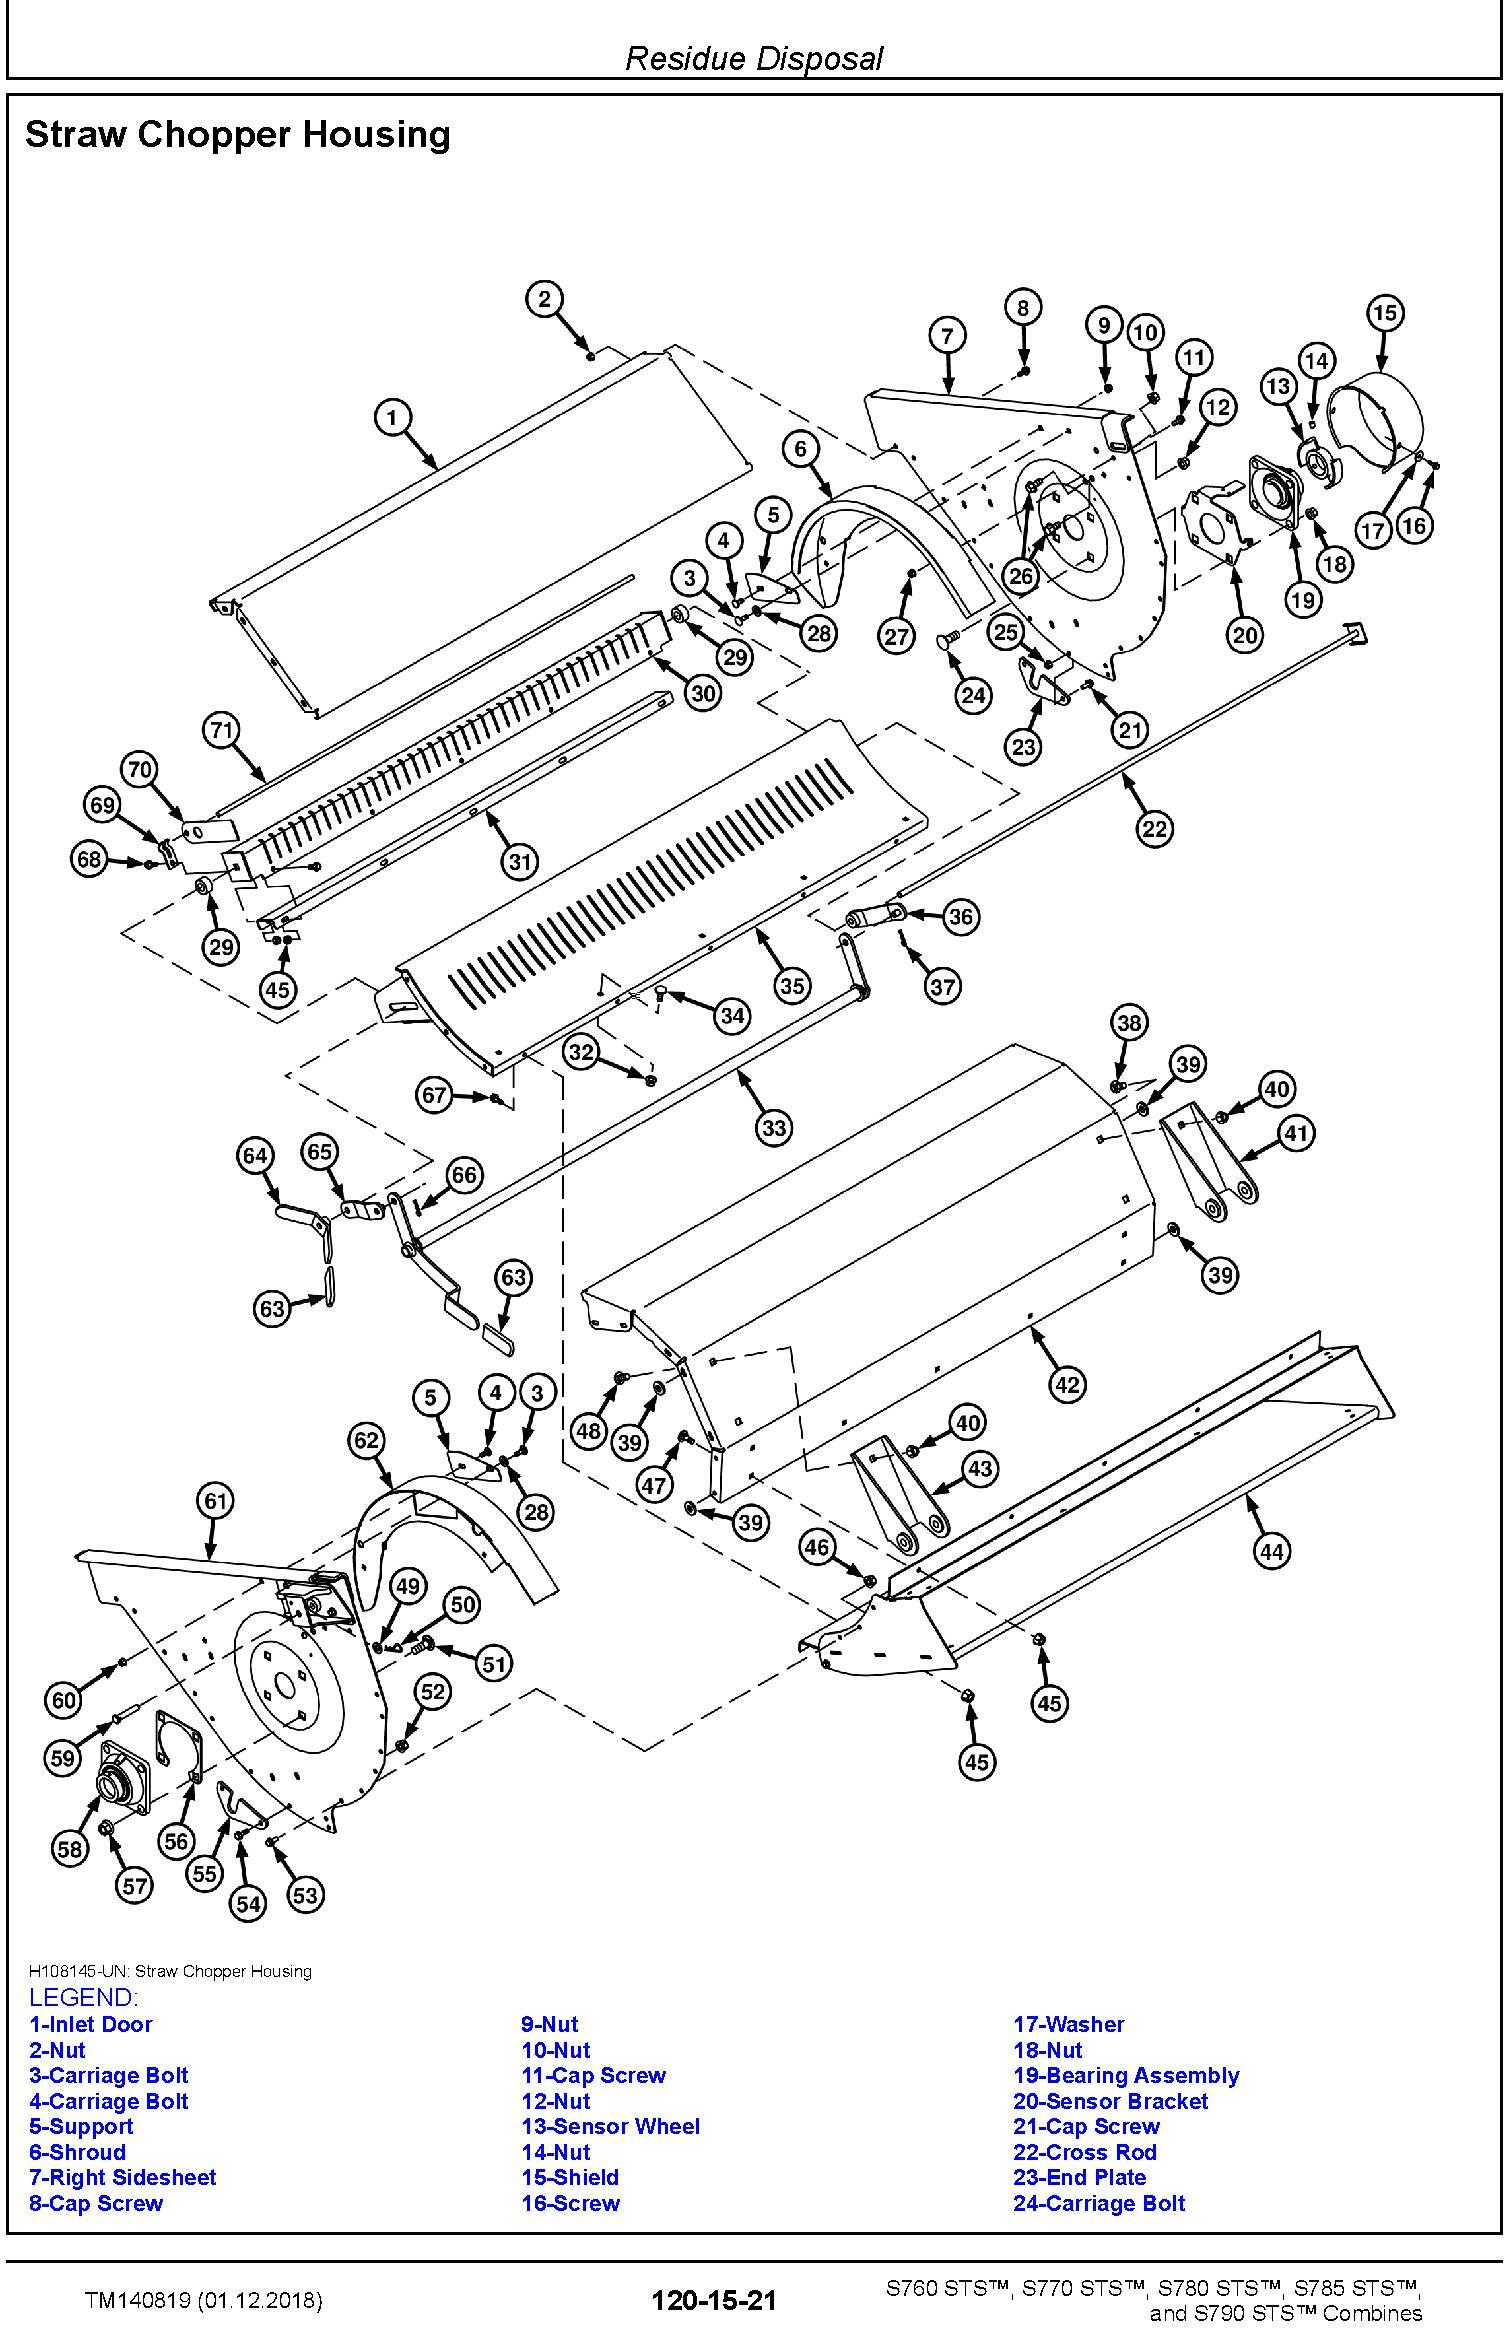 John Deere S760, S770, S780, S785, S790 STS Combines Repair Technical Service Manual (TM140819) - 2